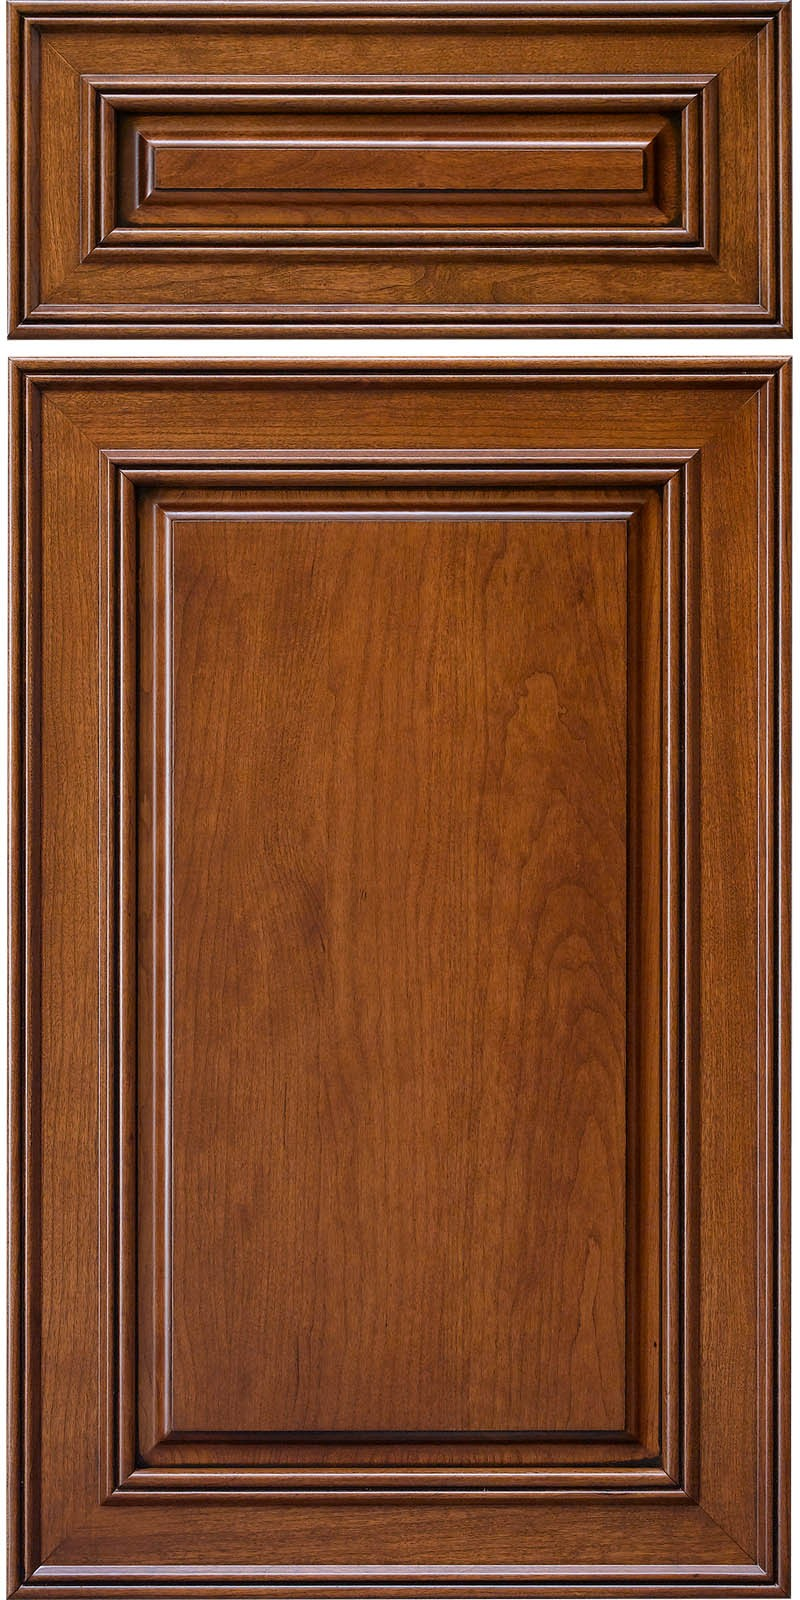 Crp10334 Solid Wood Materials Cabinet Doors Amp Drawer